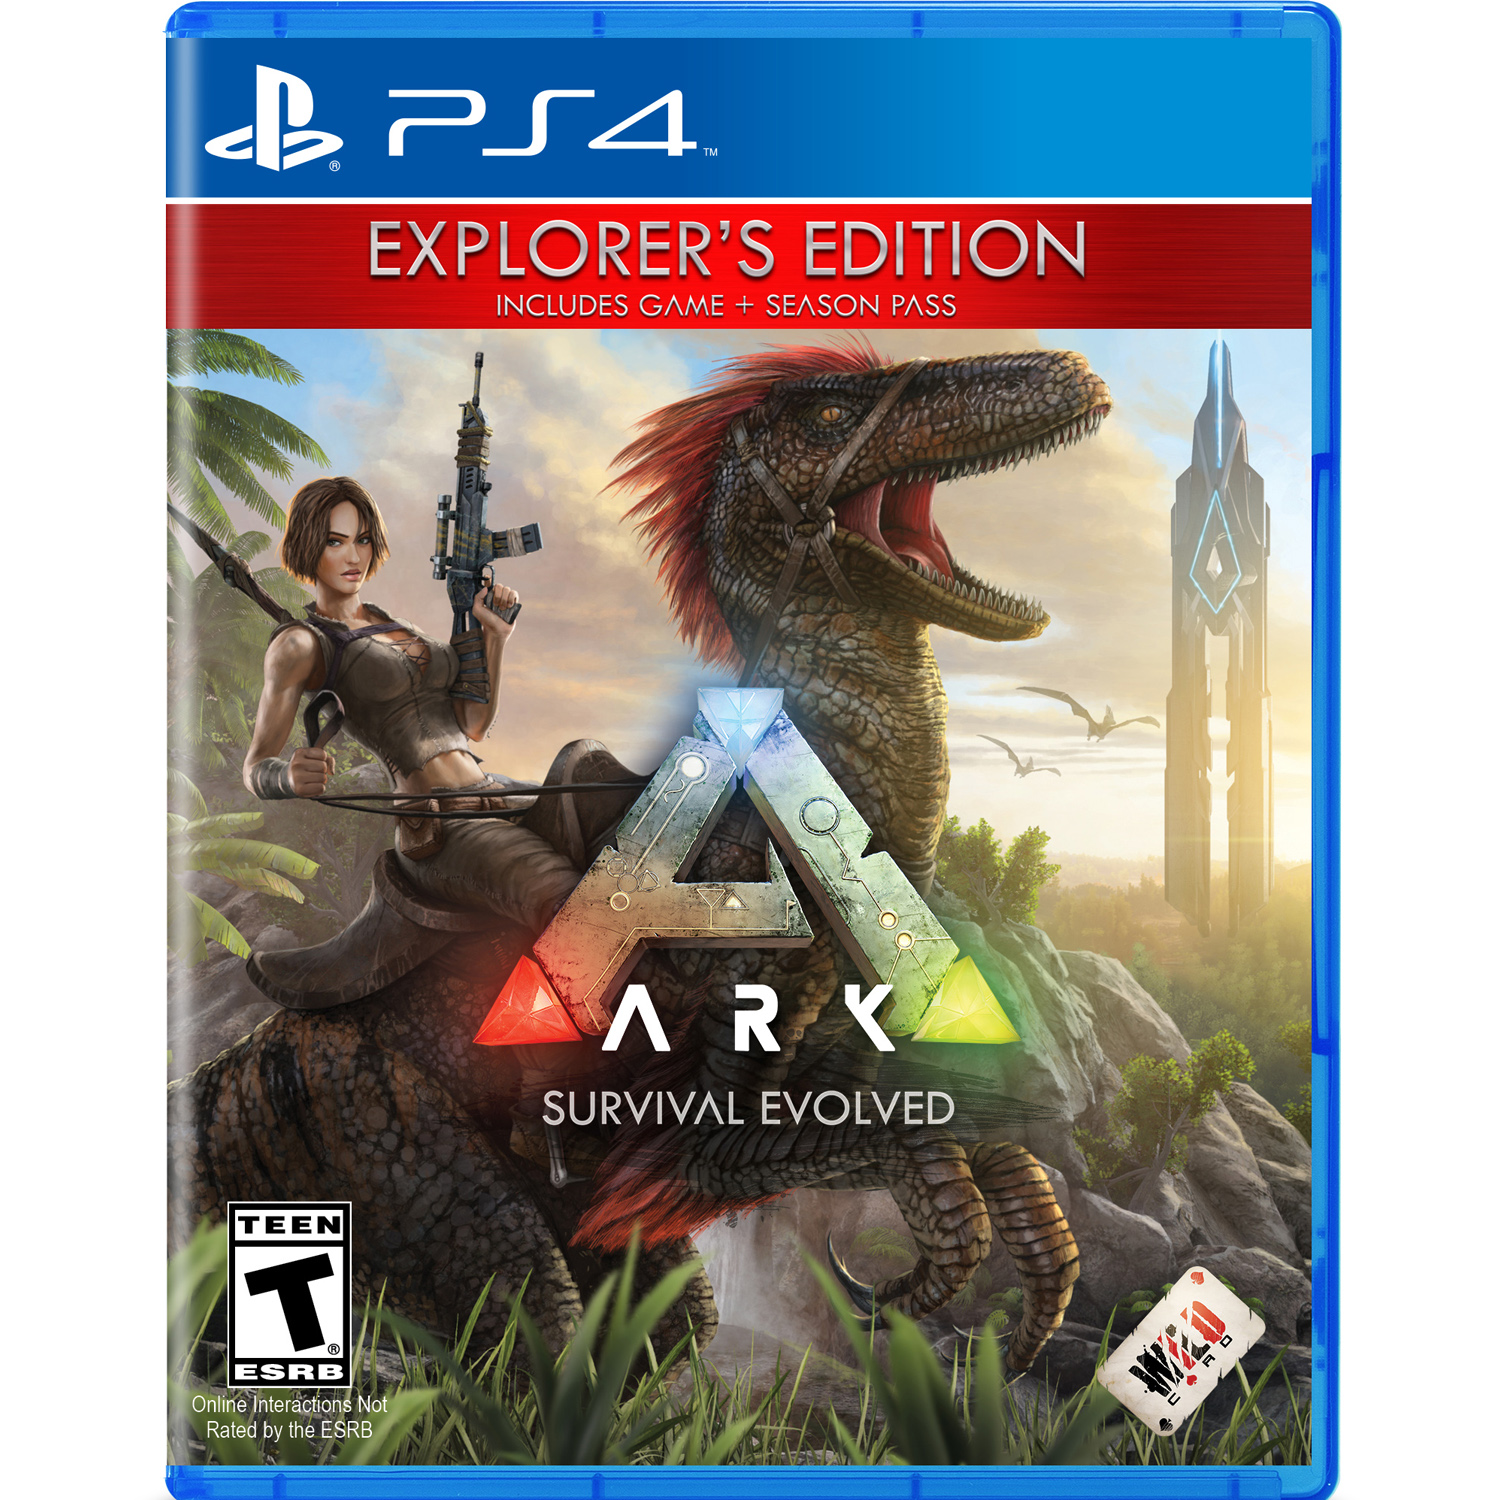 ARK Survival Evolved Explorer's Edition, Studio Wildcard, PlayStation 4, 884095178413